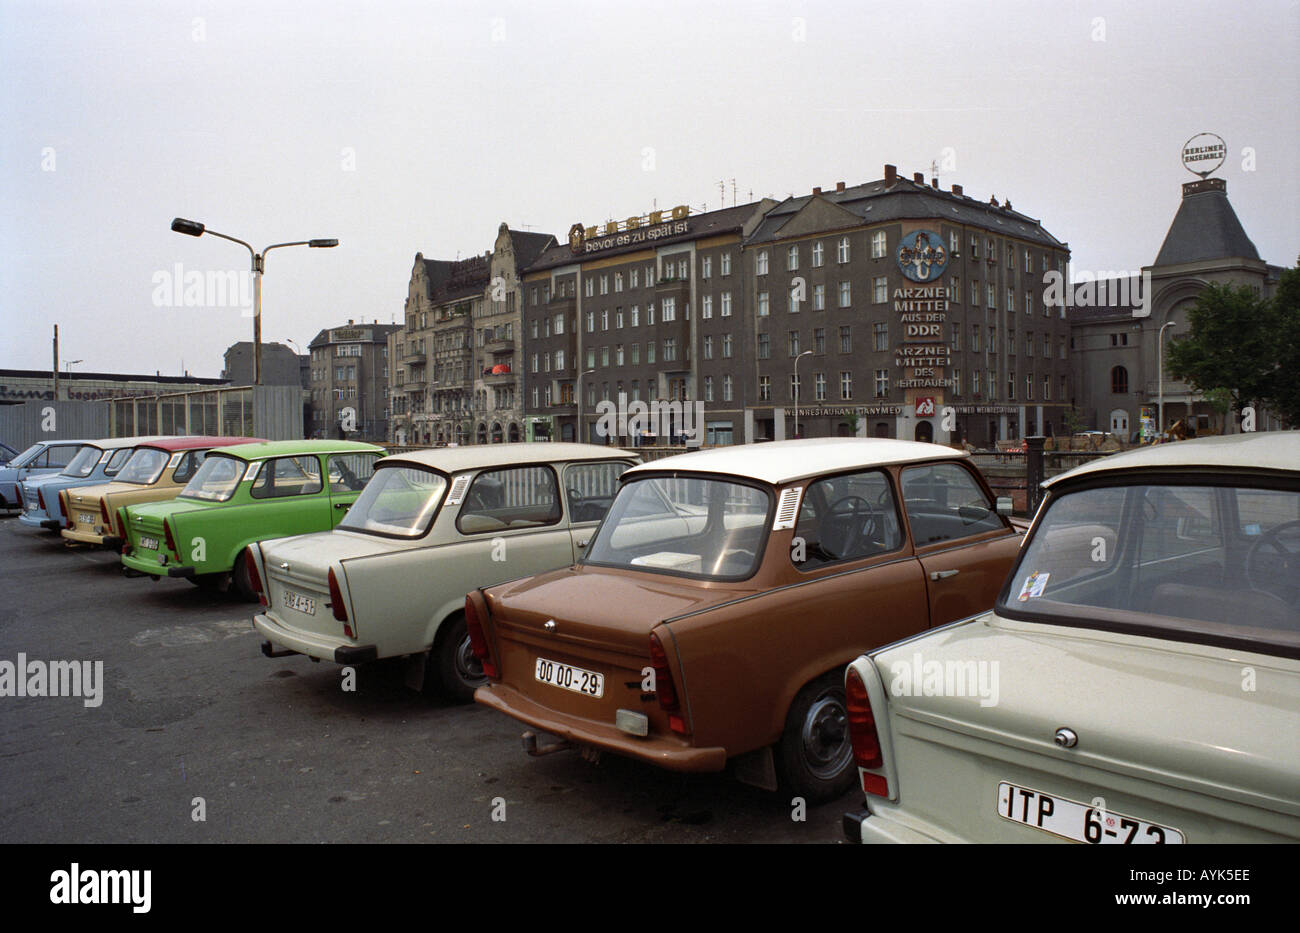 trabant gebrauchtwagen in ost berlin 1990 stockfoto bild. Black Bedroom Furniture Sets. Home Design Ideas